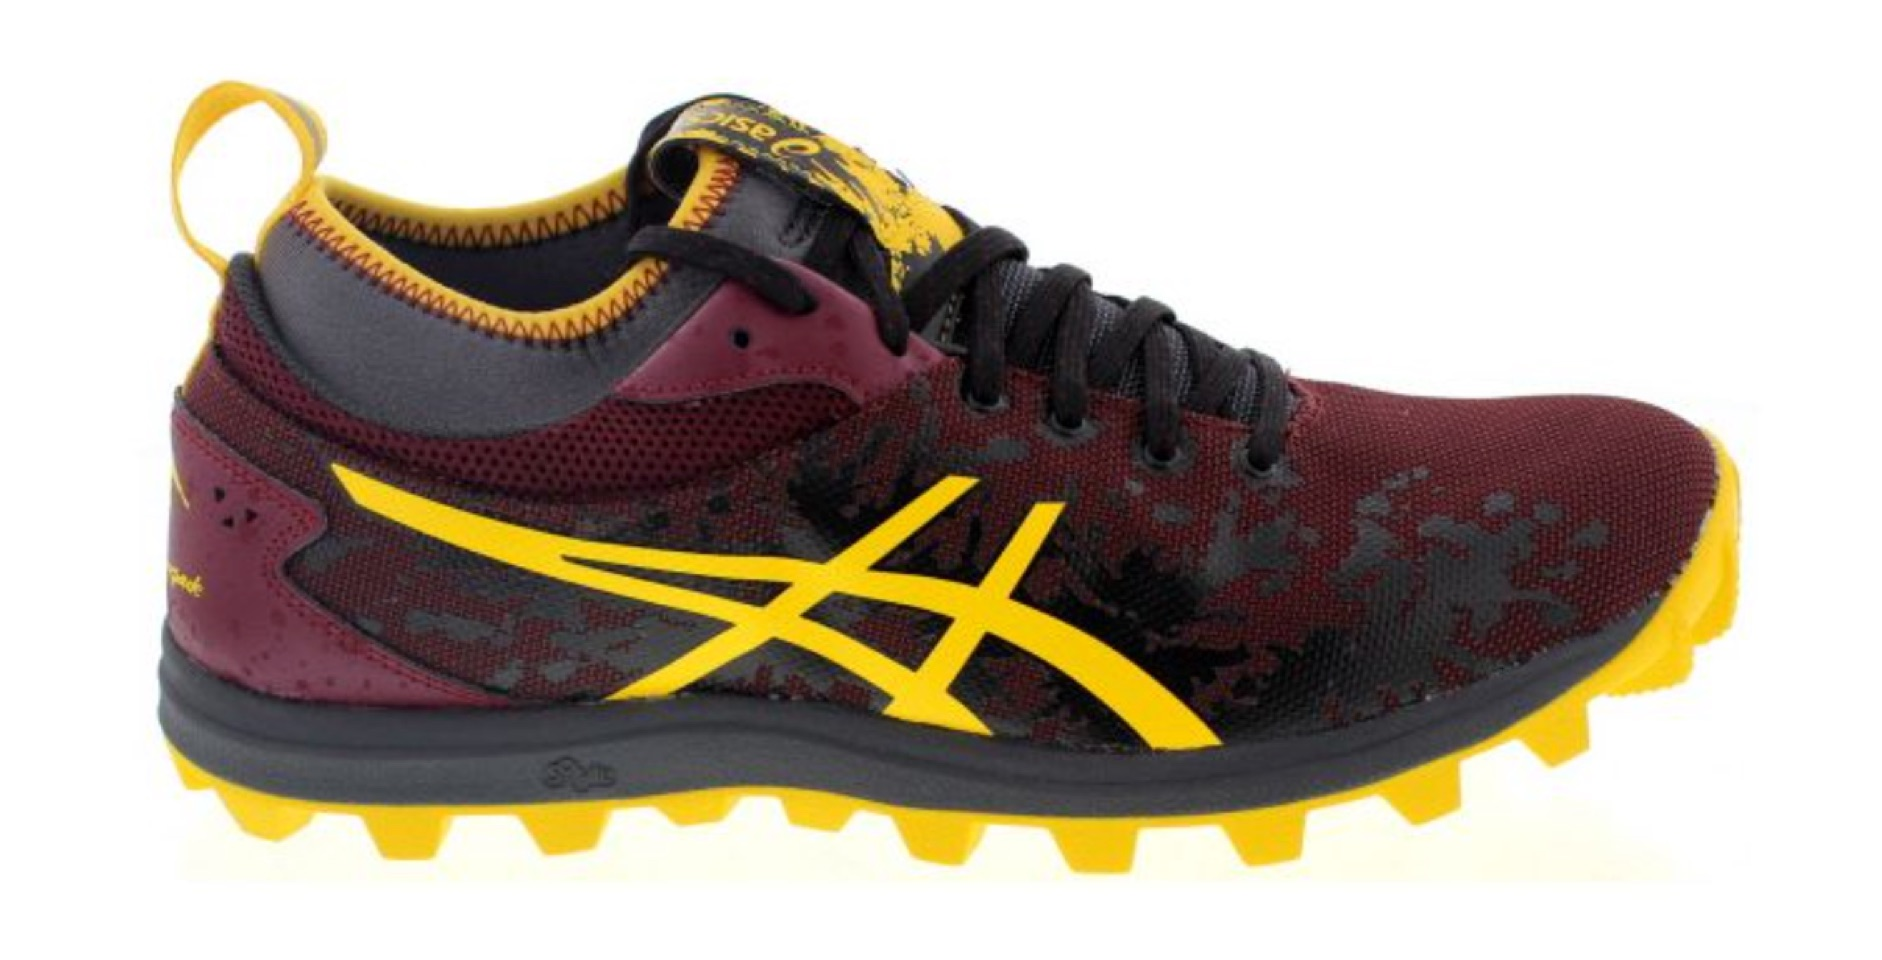 Chaussures Chaussures Trail Homme Asic Asic Trail Trail Homme Chaussures Homme Asic Trail Chaussures UzpVSqM